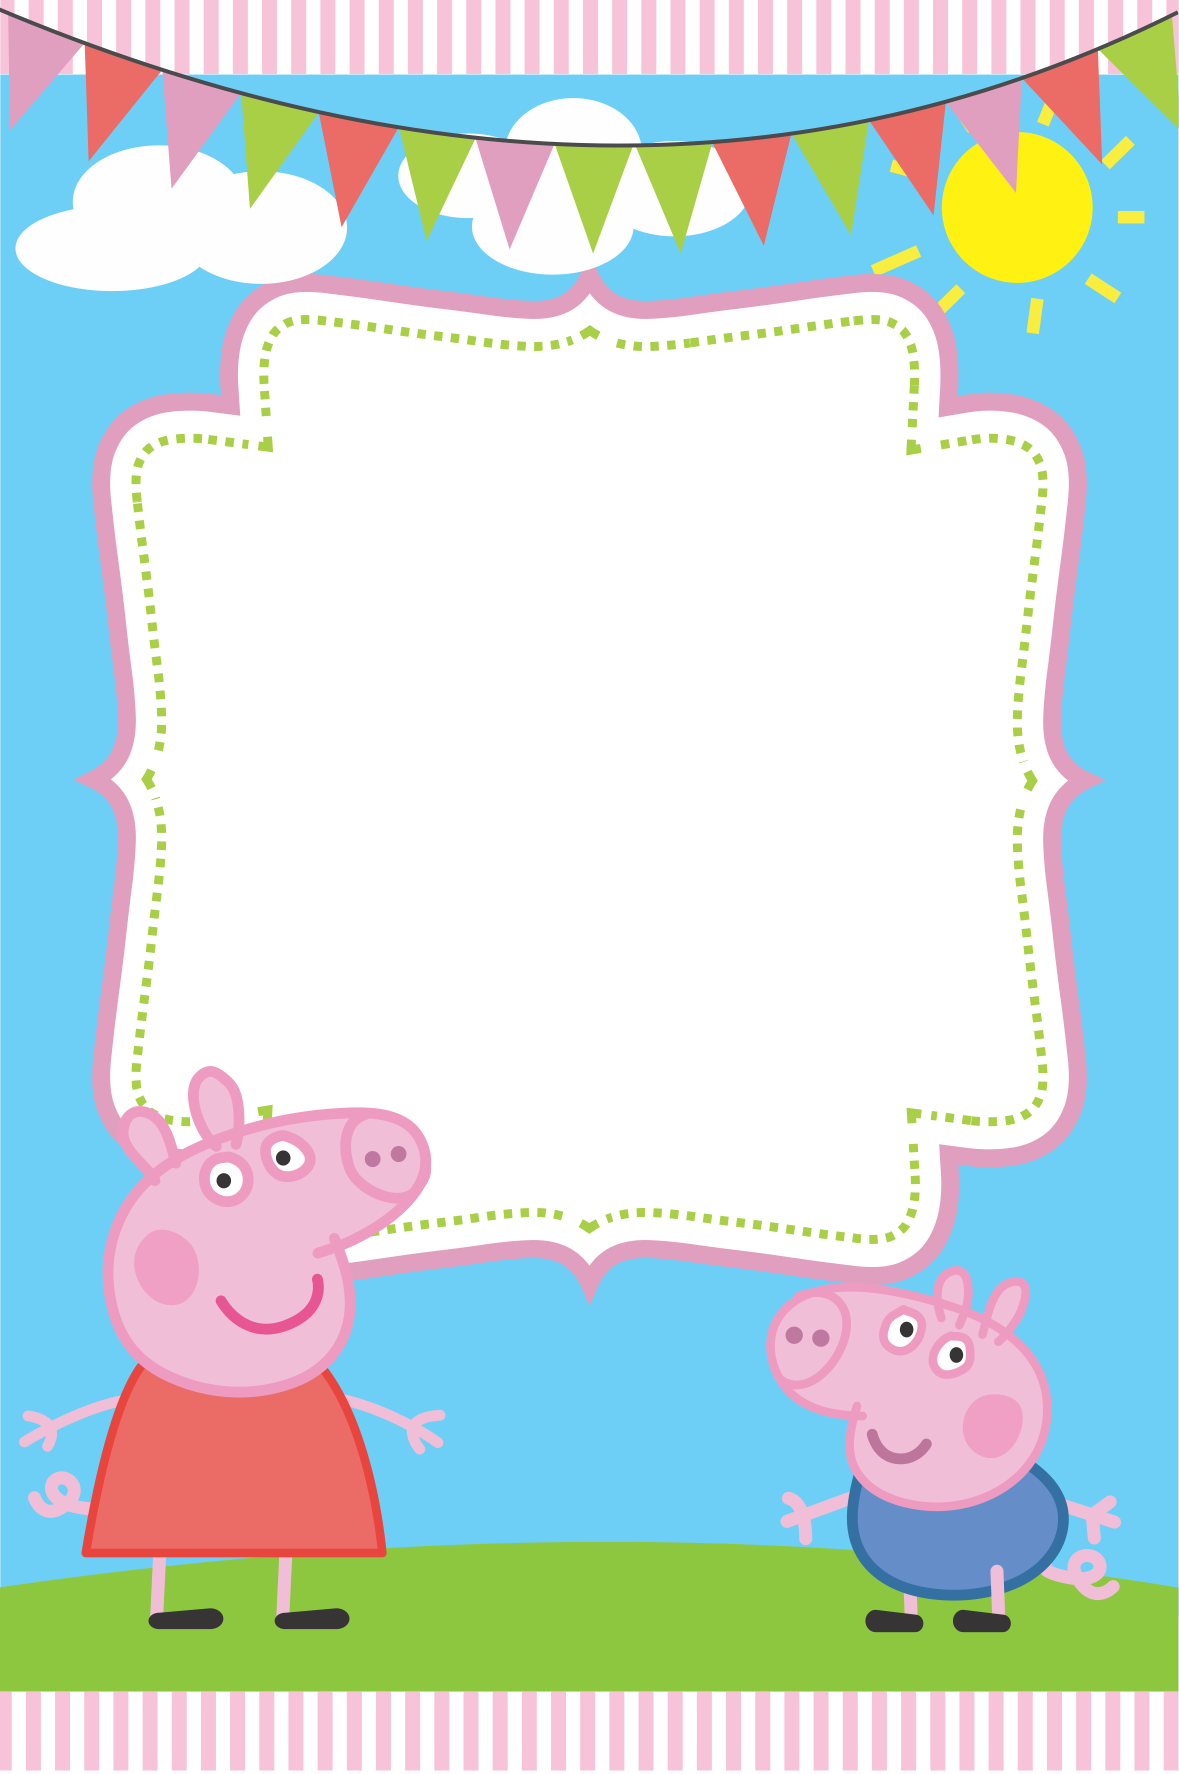 Blank Peppa Pig Invitation Peppa Pig Invitations Peppa Pig Birthday Invitations Pig Birthday Invitations